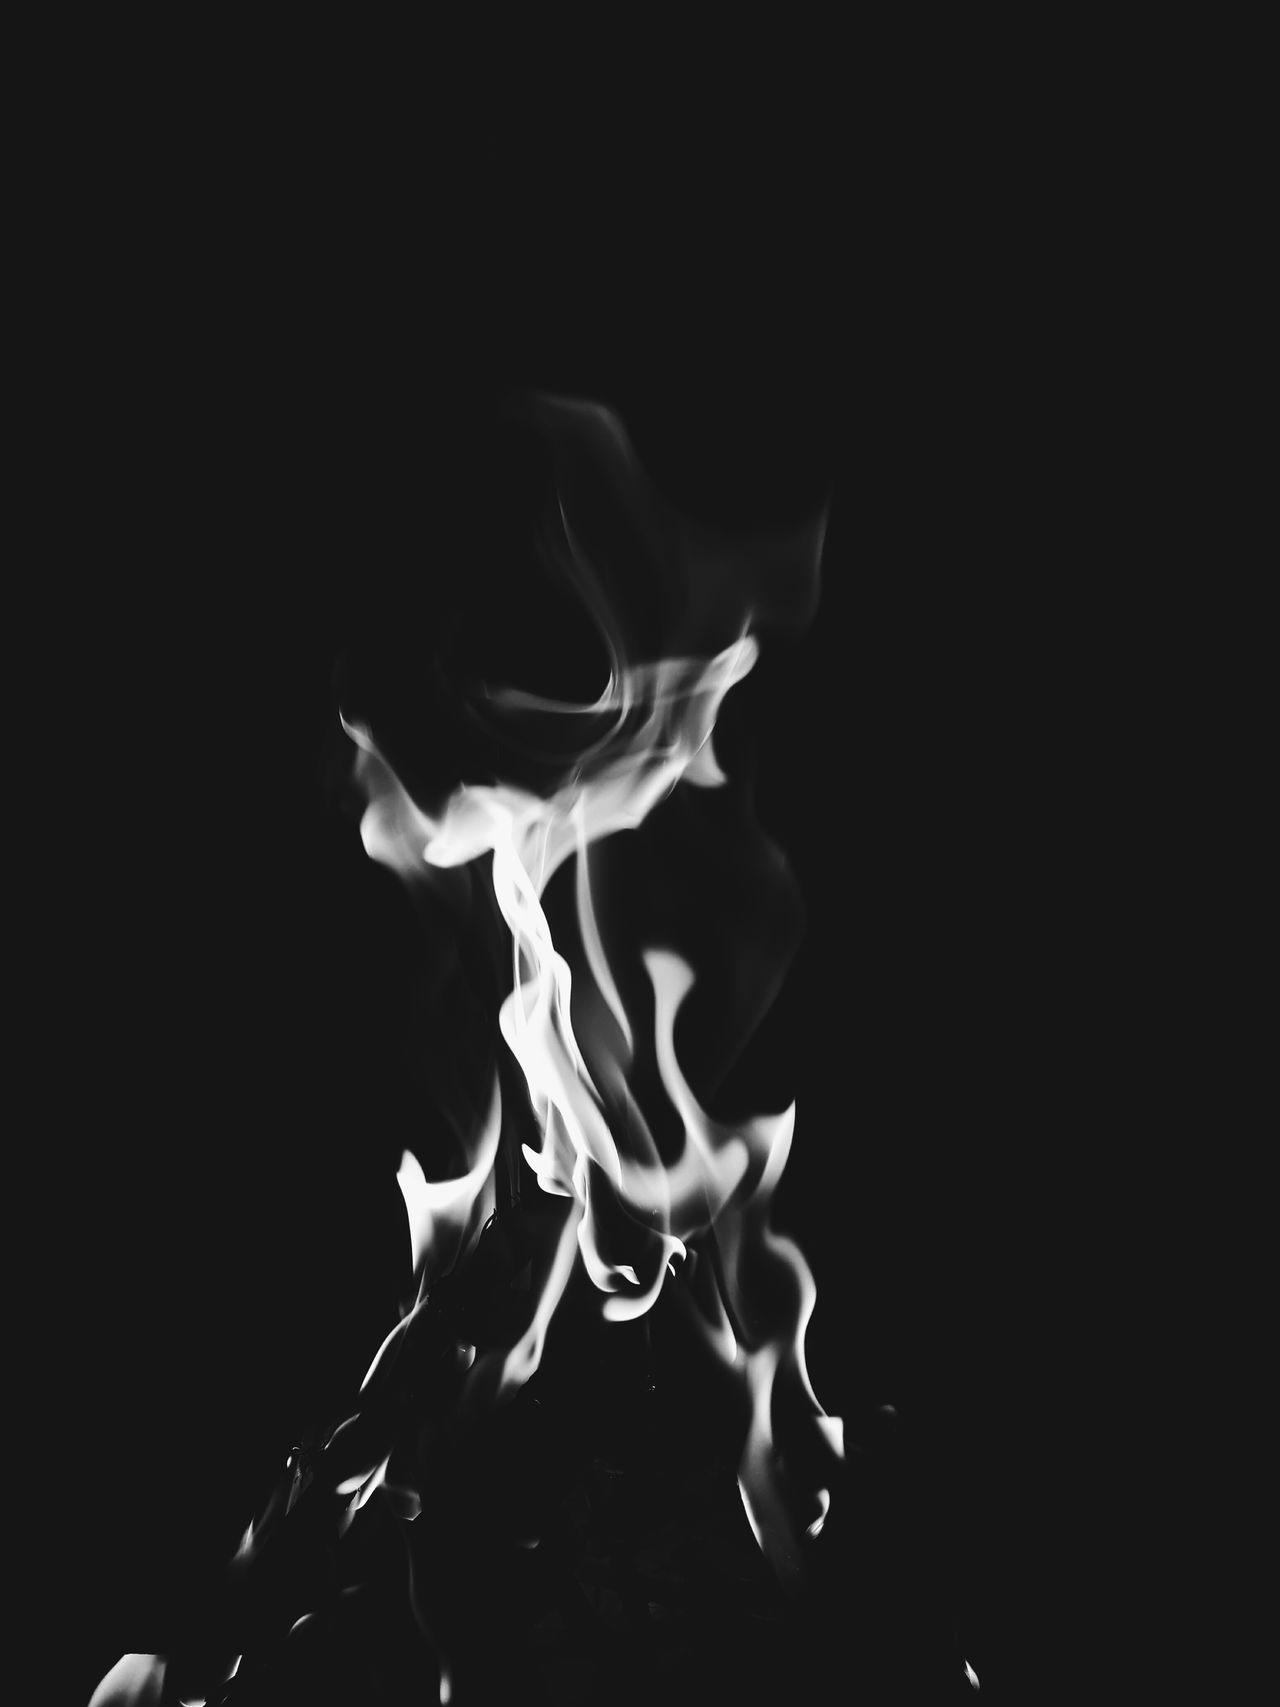 Black Background Fragility Studio Shot No People Close-up Beauty In Nature Flame Flames & Fire Flame, Fire, Blaze, Conflagration, Inferno